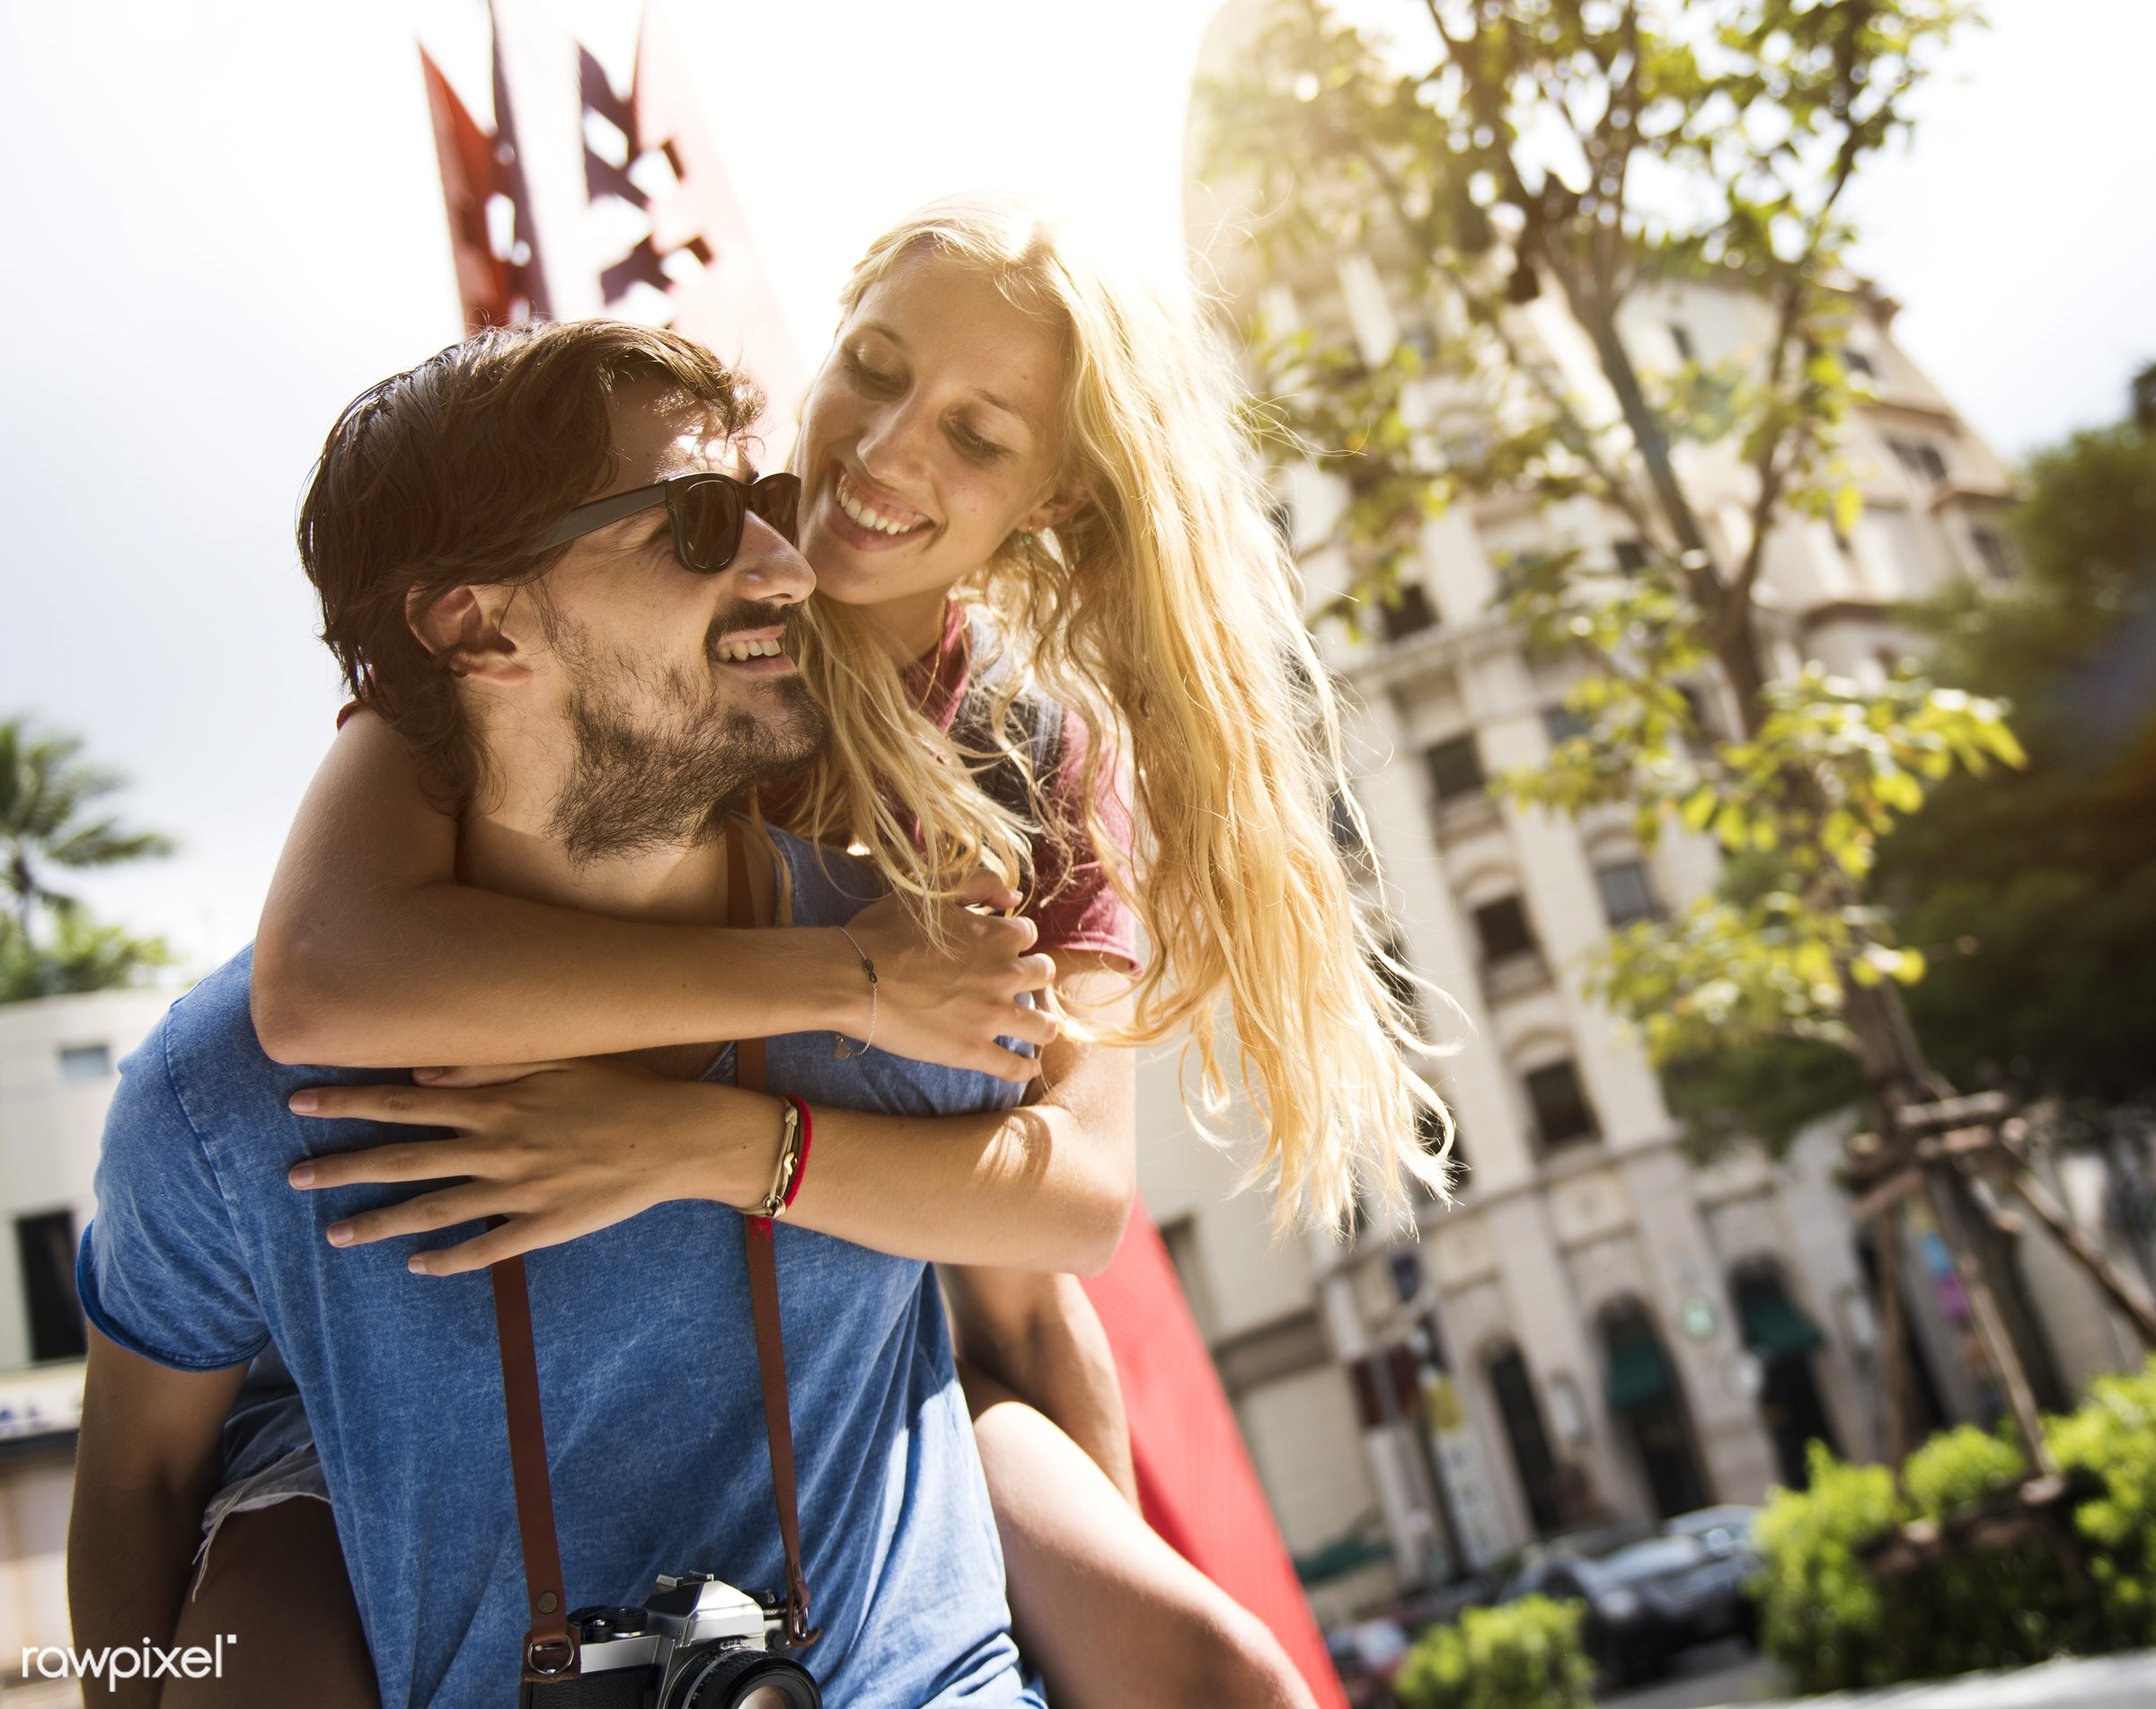 adult, affection, beard, blonde, bonding, boyfriend, building, carrying, casual, caucasian, cheerful, city, couple, female,...